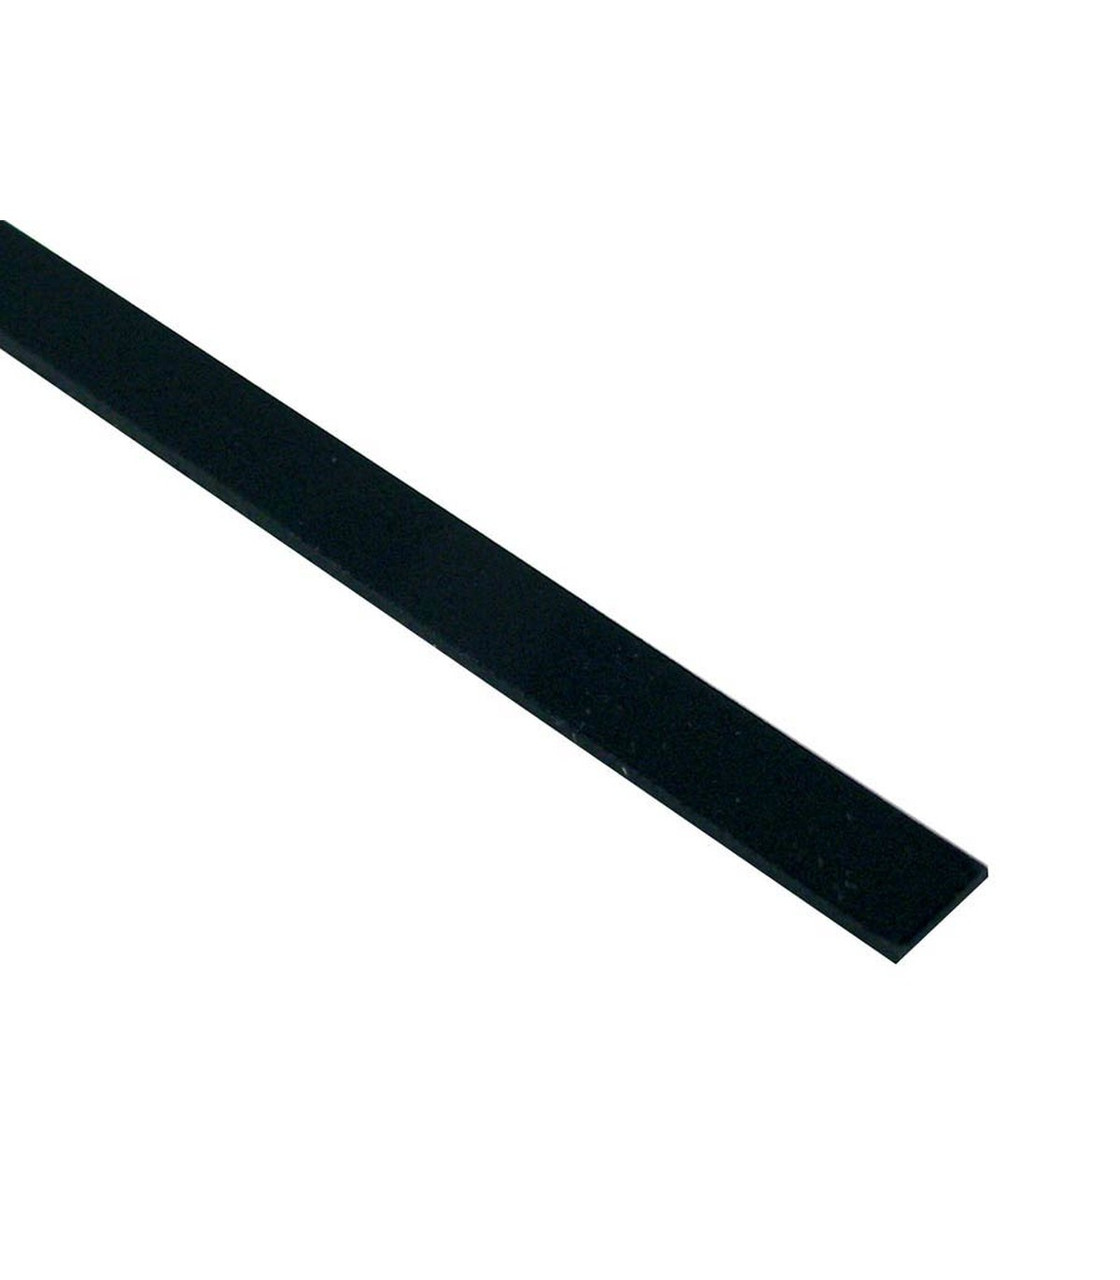 Plastic Binding - 1.5mm Black